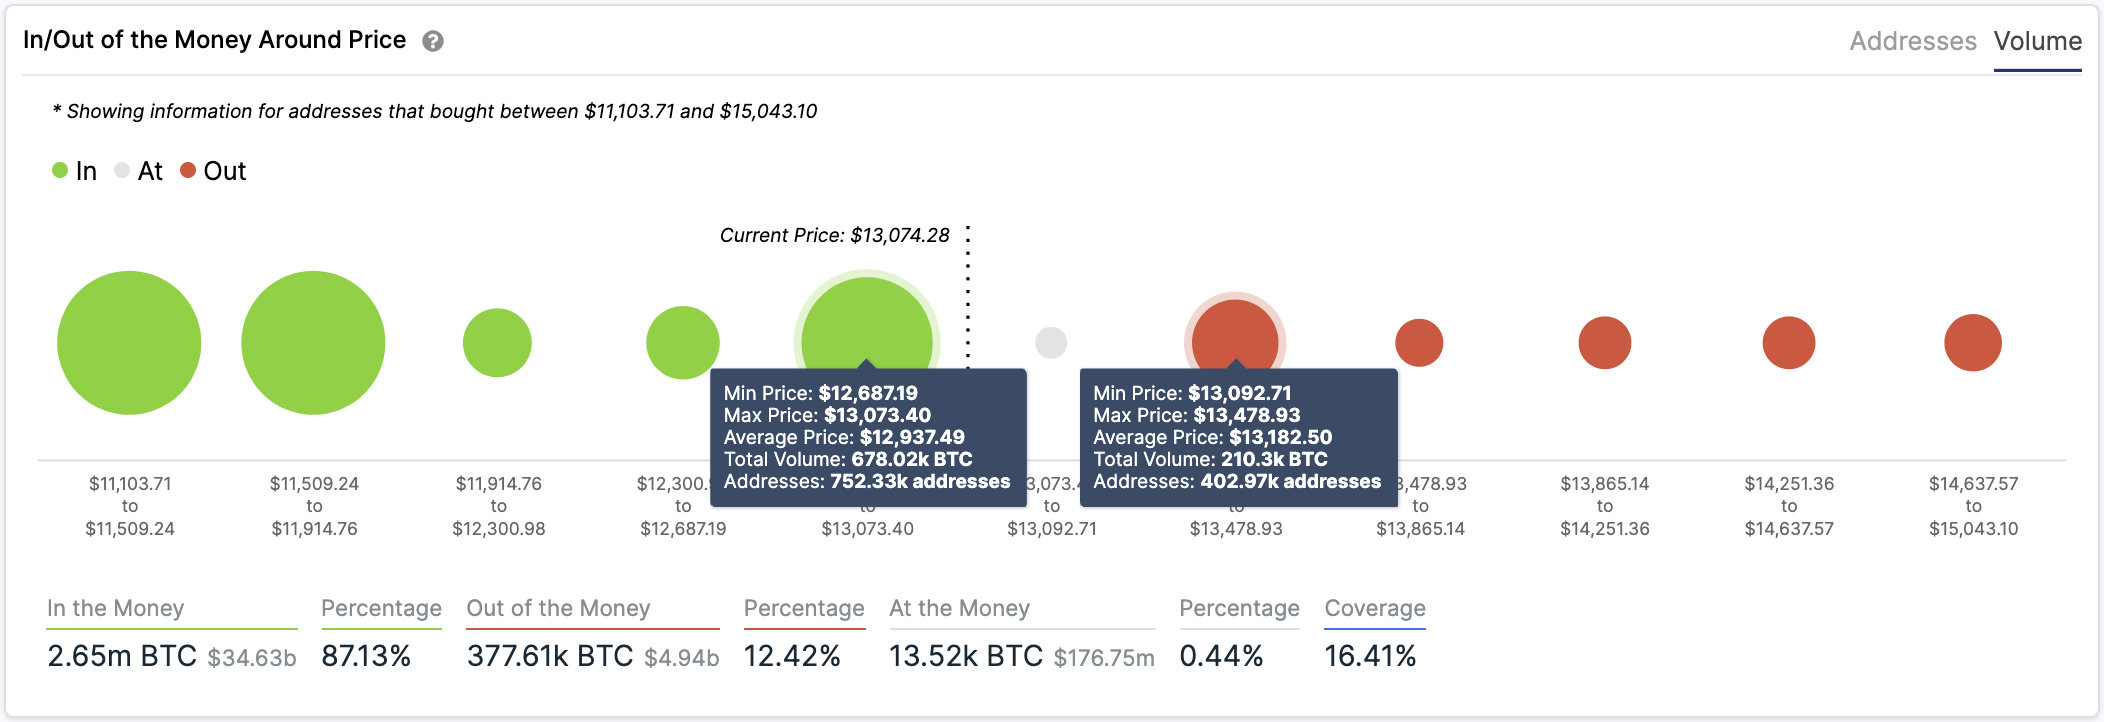 BTC In/Out of the Money Around Price by IntoTheBlock